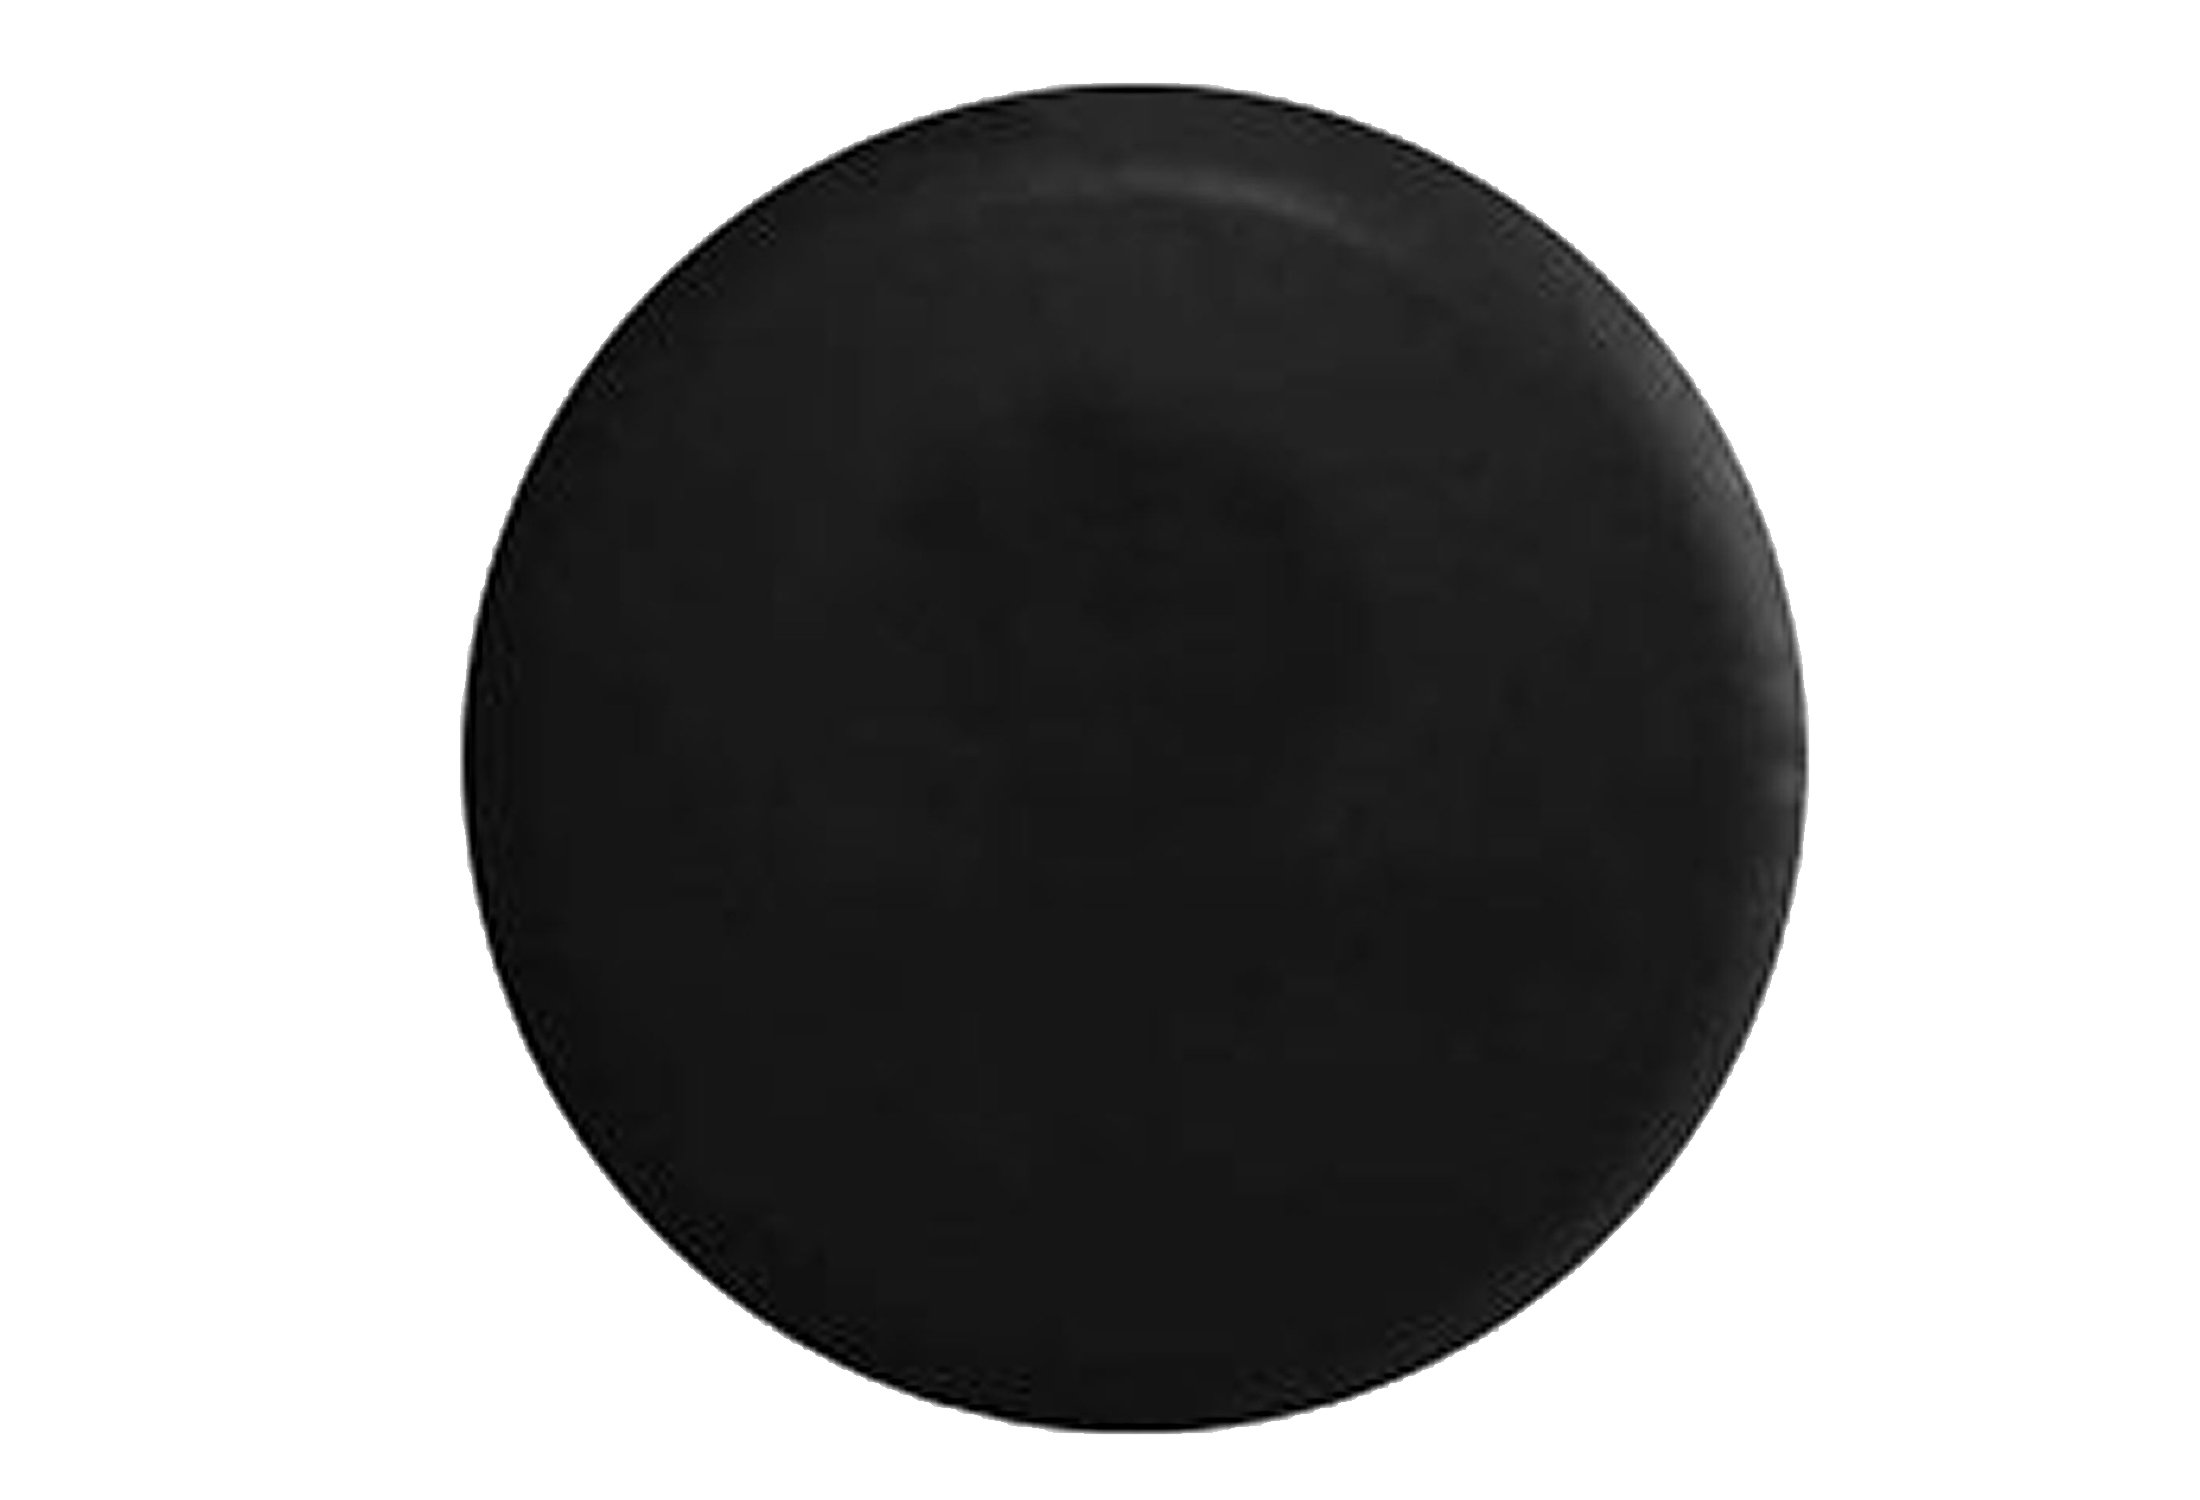 American Educational Products Marine Grade - Top Quality Blank Black Dealer Quality Spare Tire Cover OEM Vinyl (28'', Black)